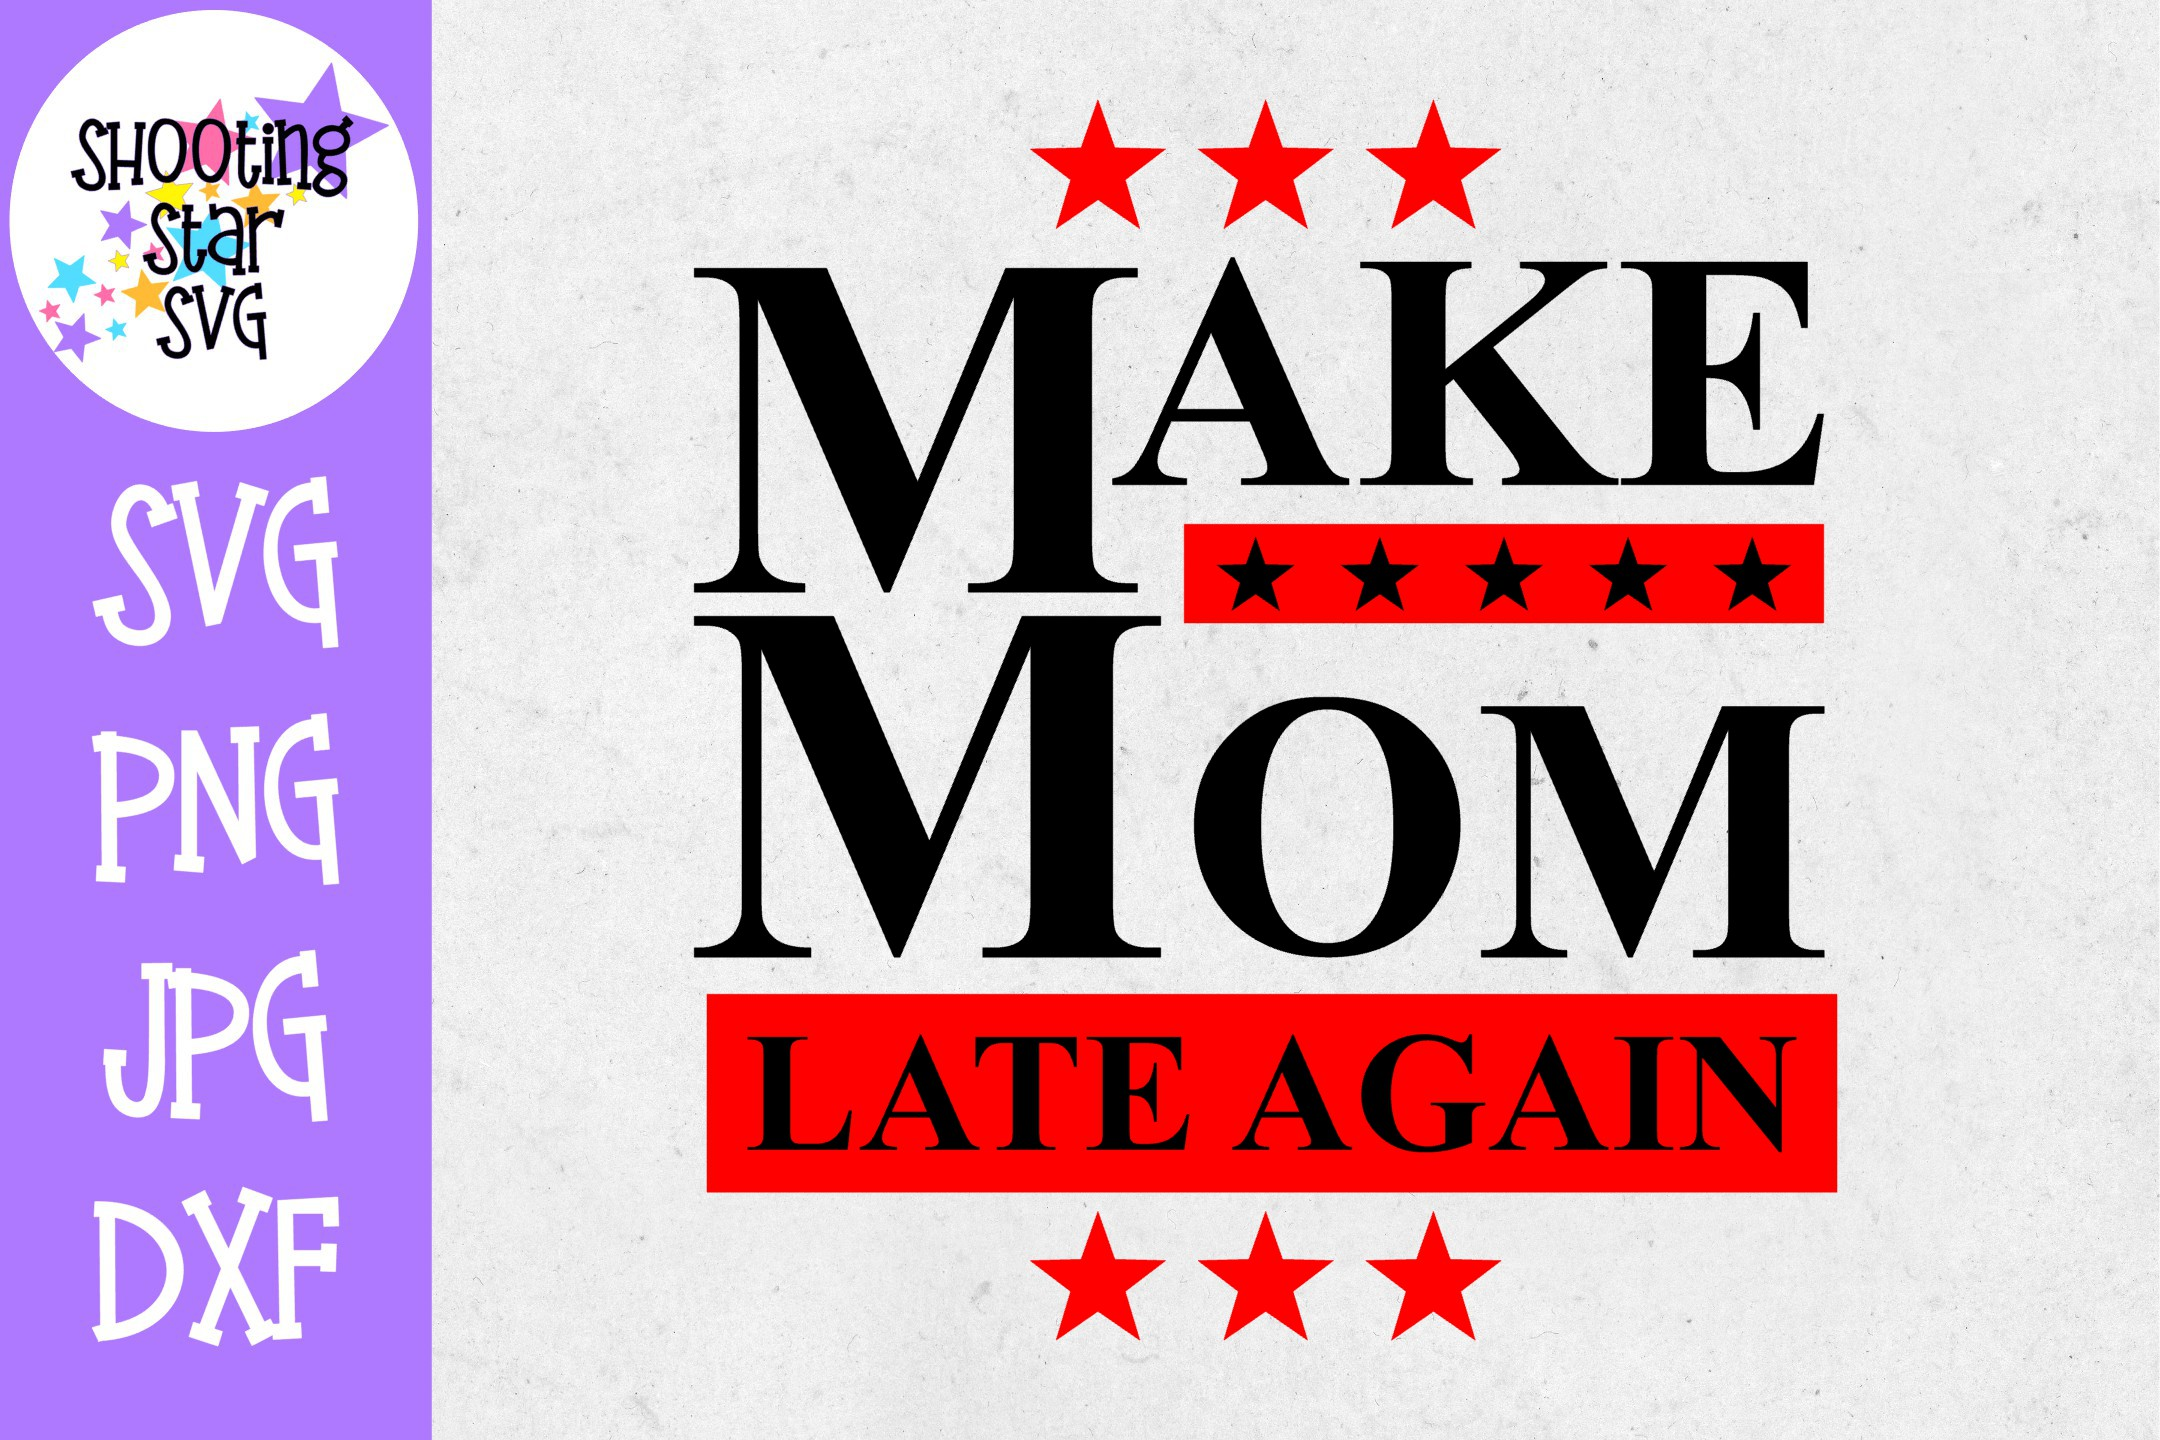 Make Mom Late Again SVG - Funny SVG - Mom SVG example image 1